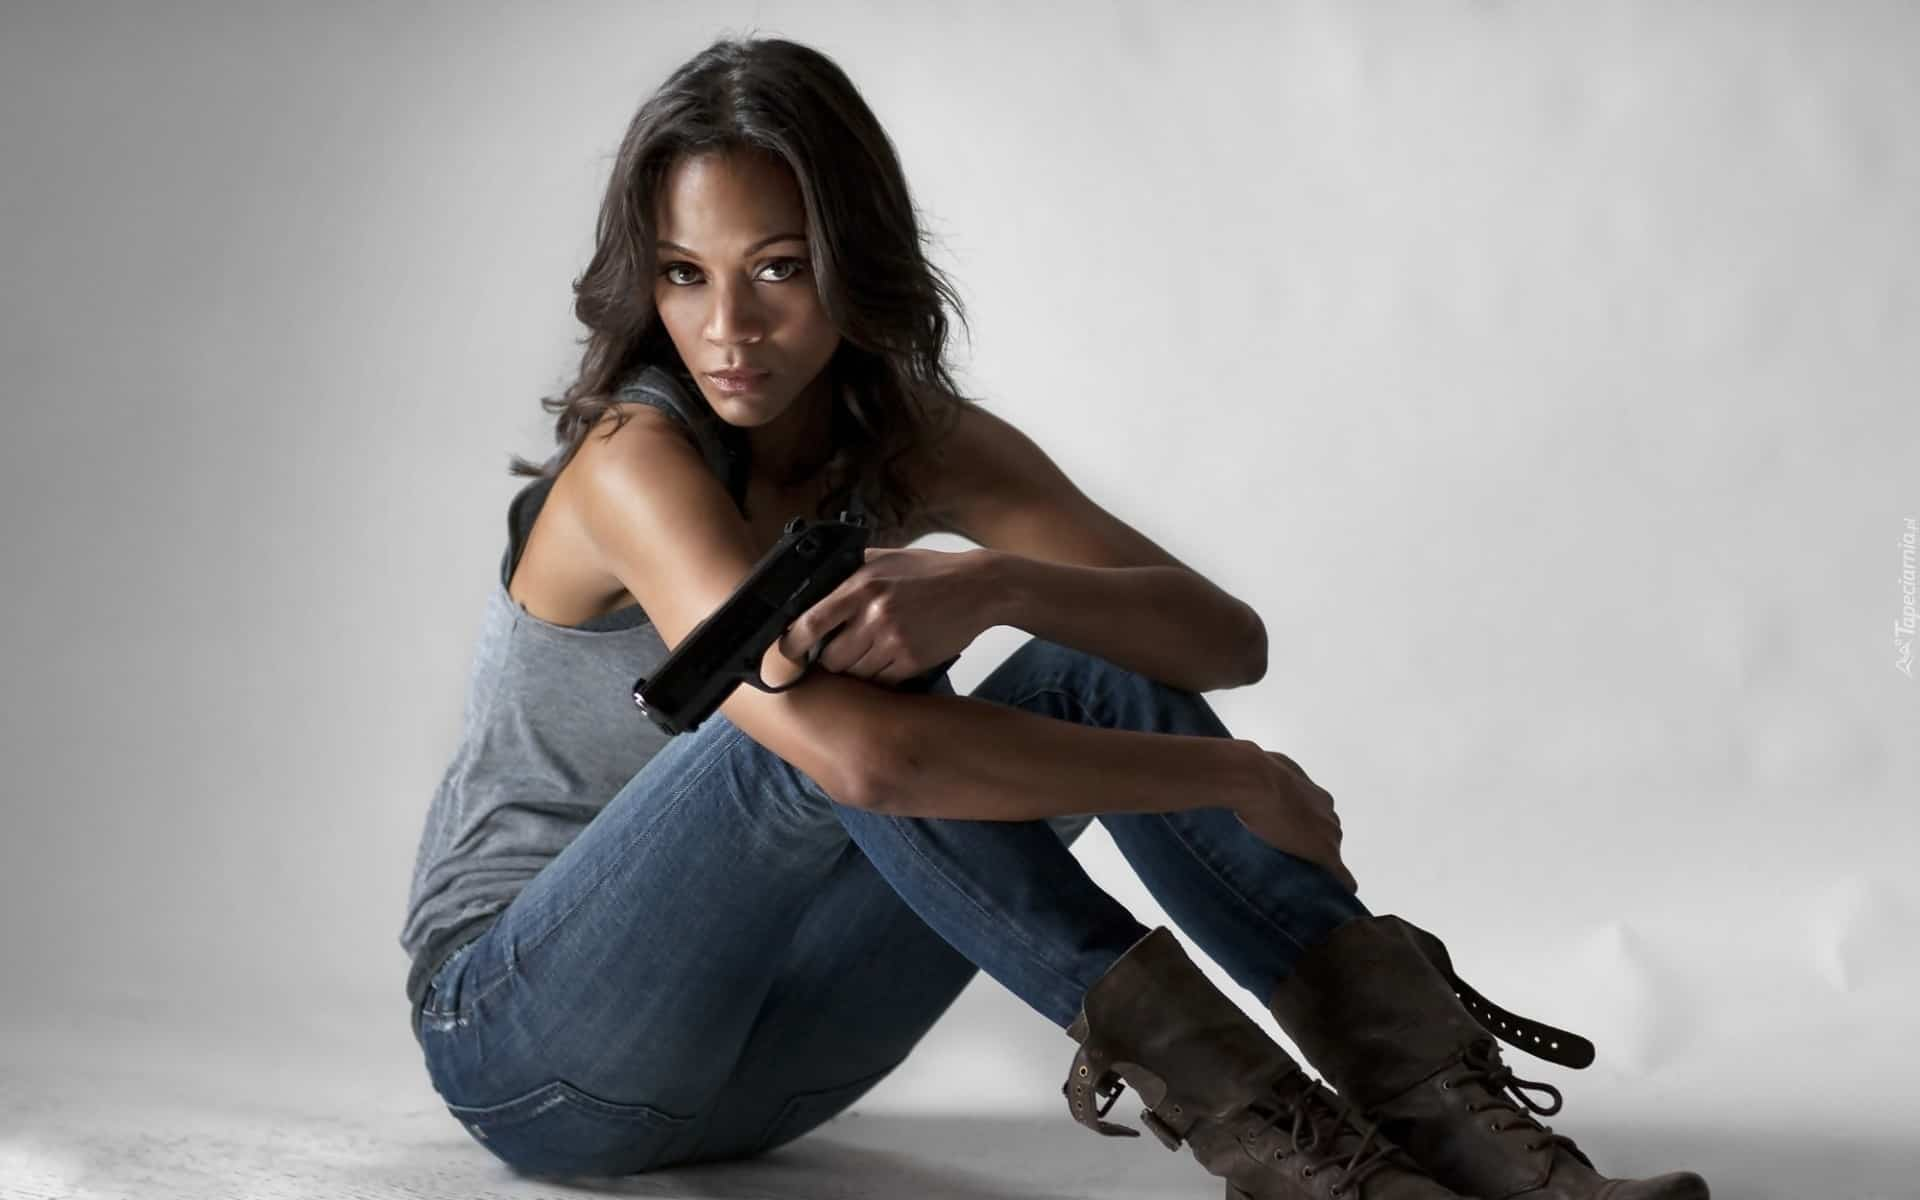 Best Zoe Saldana Movies - SparkViews